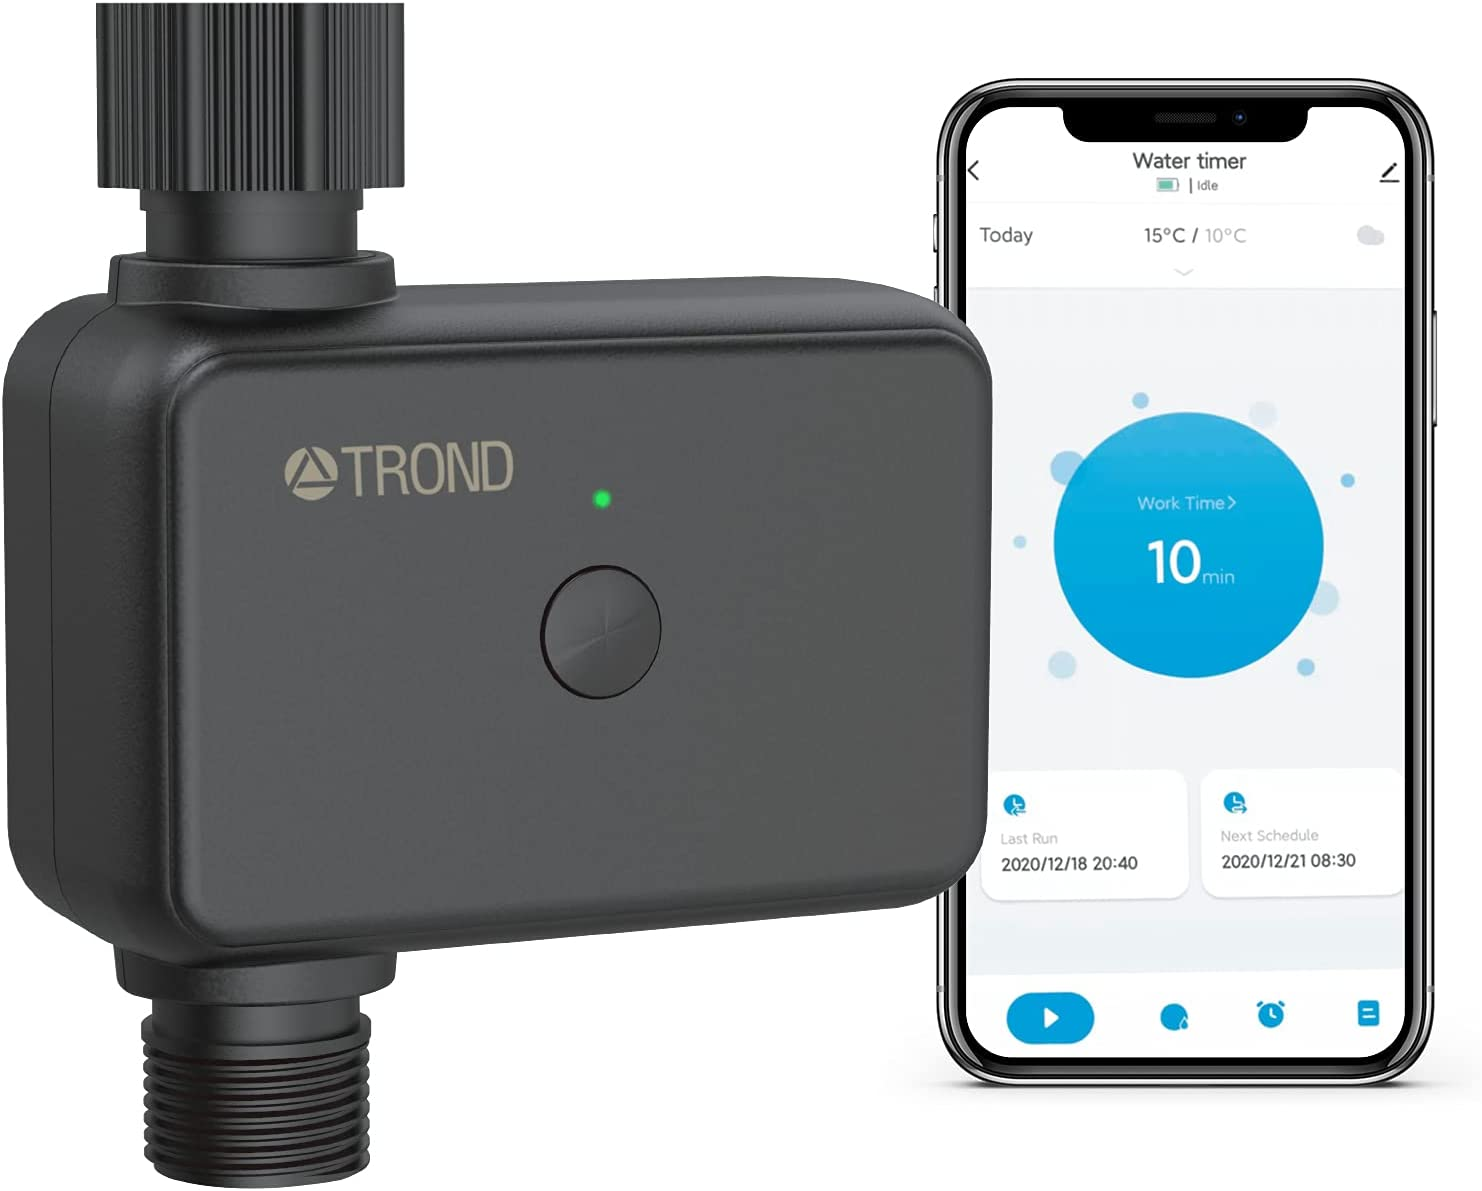 TROND Smart Sprinkler Water Timer, Bluetooth Water Hose Faucet Timer with Rain Delay, Programmable Irrigation Timer with Irrigation&Mist Mode for Outdoor Garden, Lawn